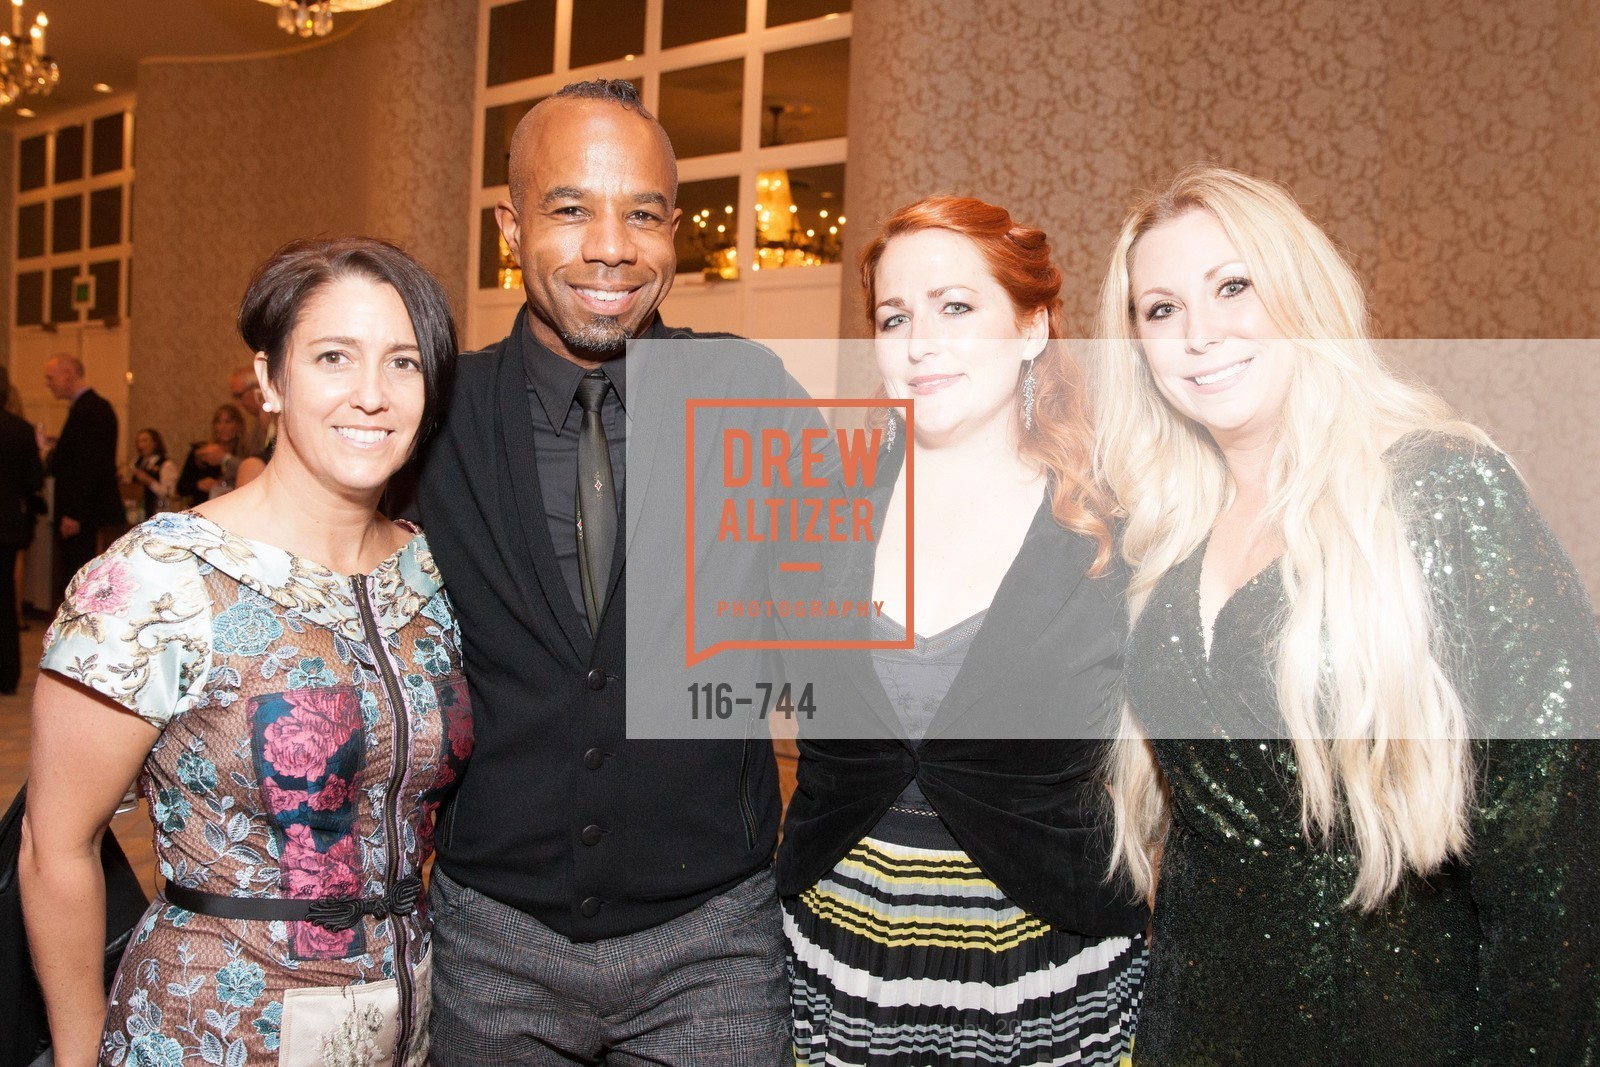 Carolina Data, Reggie Snowden, Renee Pelton, Kyla Naegle, Celebration of Launch of SHYP in Los Angeles, US, May 20th, 2015,Drew Altizer, Drew Altizer Photography, full-service agency, private events, San Francisco photographer, photographer california